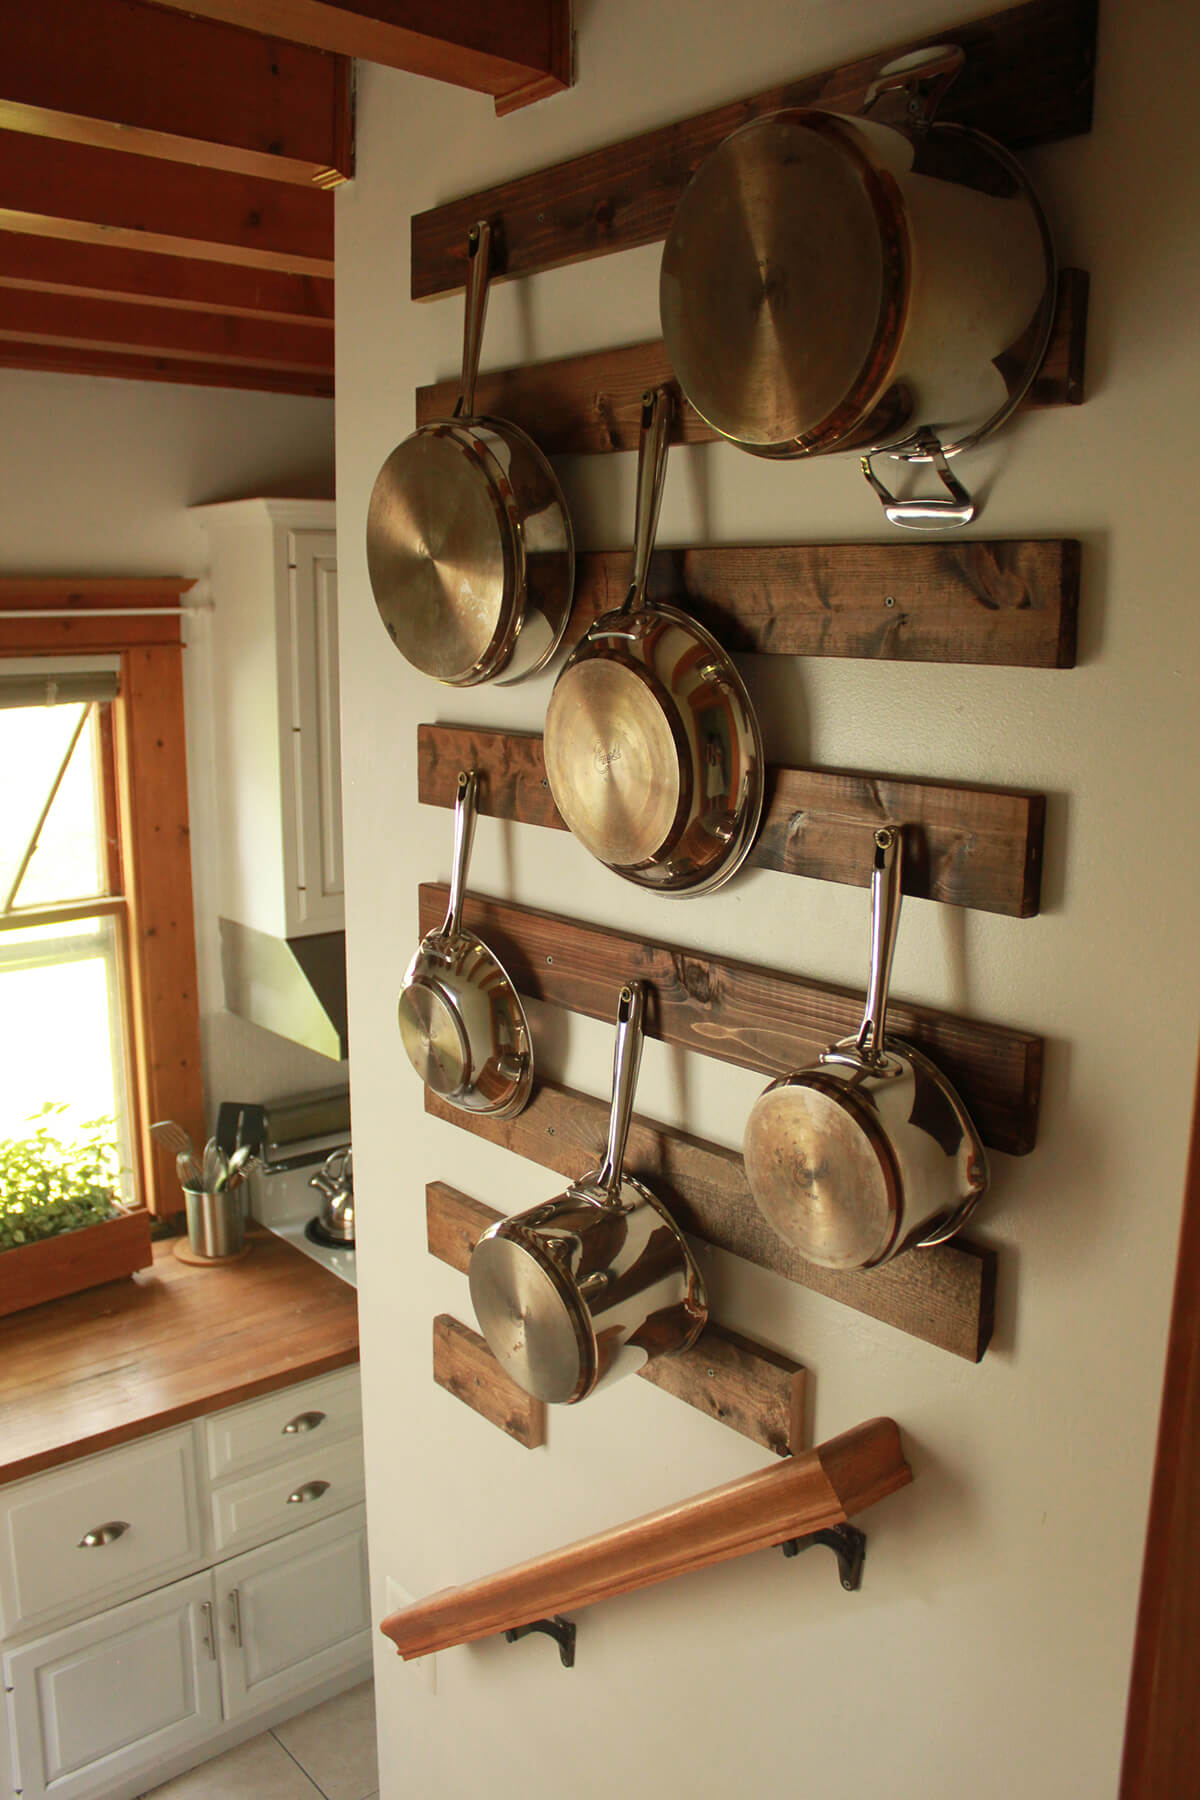 kitchen-wall-decor-ideas The utensils rack